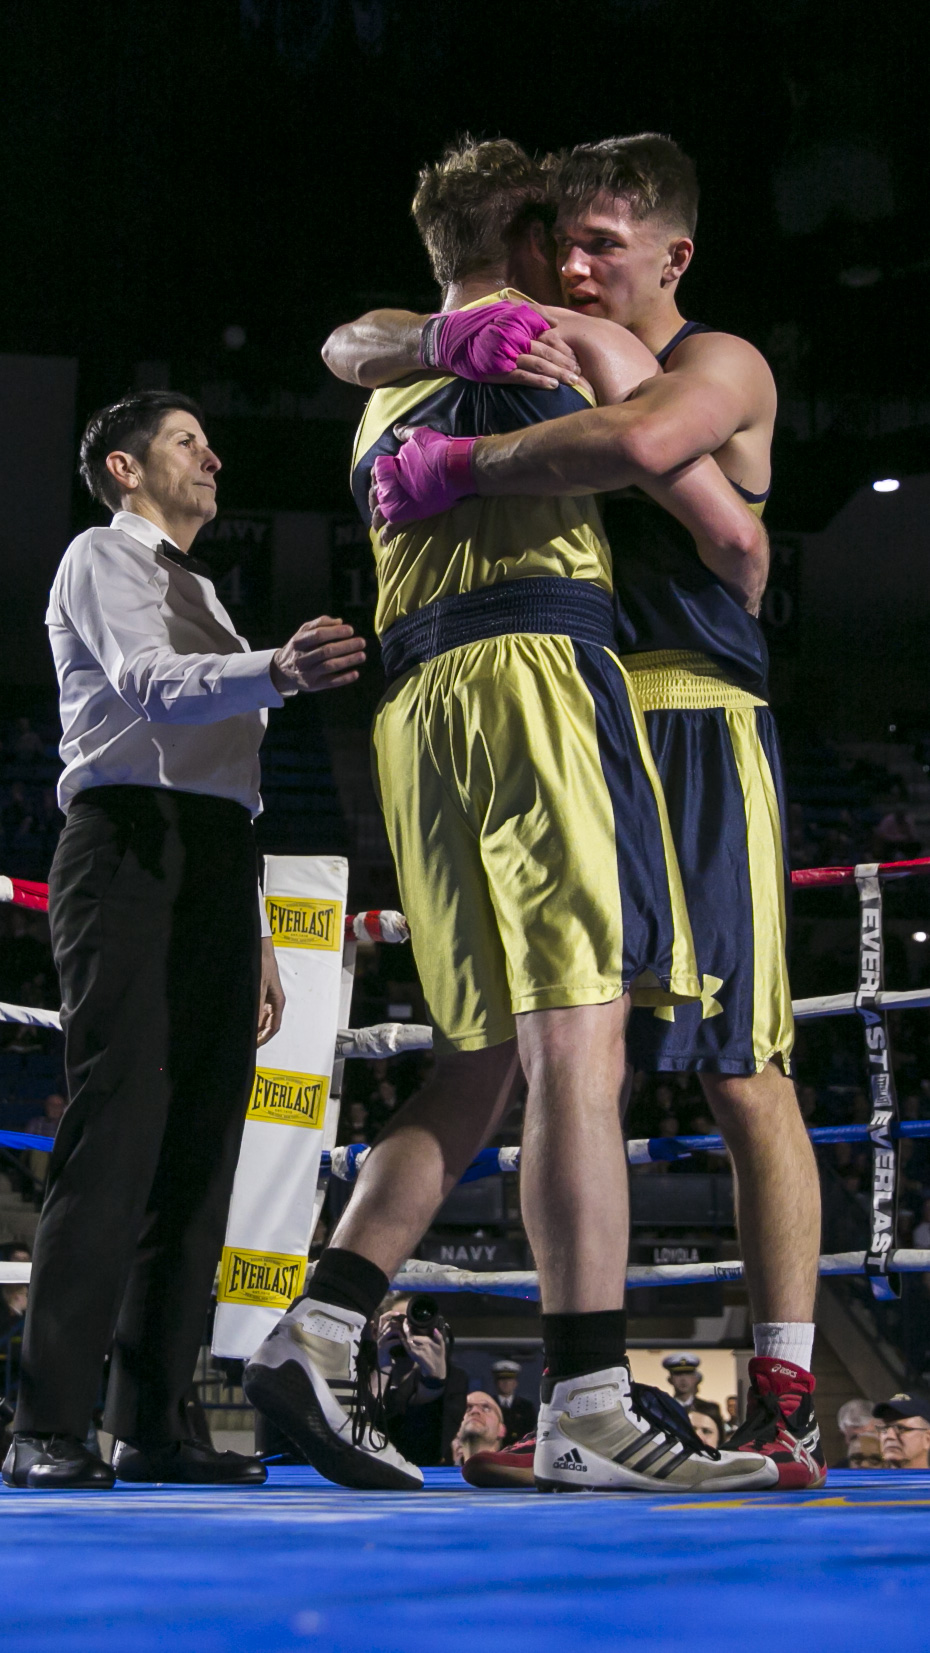 Jay Packer, (in gold) and Charlie Akerblom, (in blue), both from Philadelphia, PA, hug after slugging it out in the 185 lb weight class during the United States Naval Academy's 77th Brigade Boxing Championships held on Feb. 23, 2018. Akerblom won the fight. (Alan Lessig/Staff)